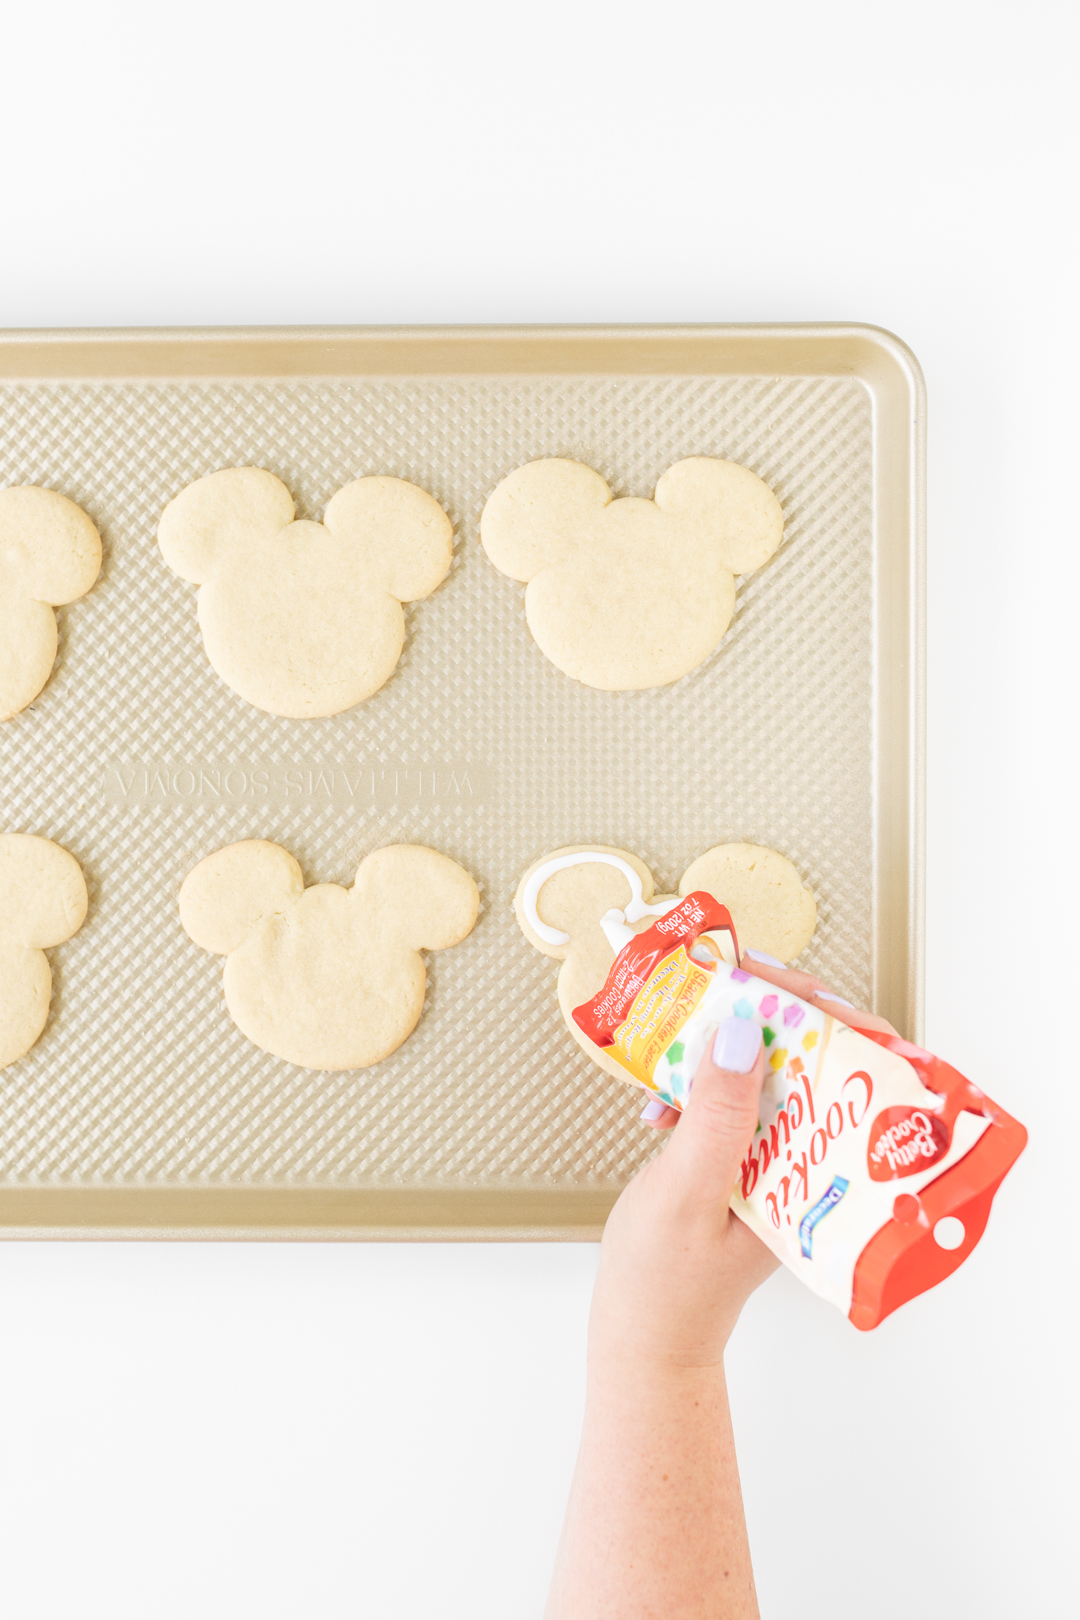 Adding icing to Mickey Mouse Cookies